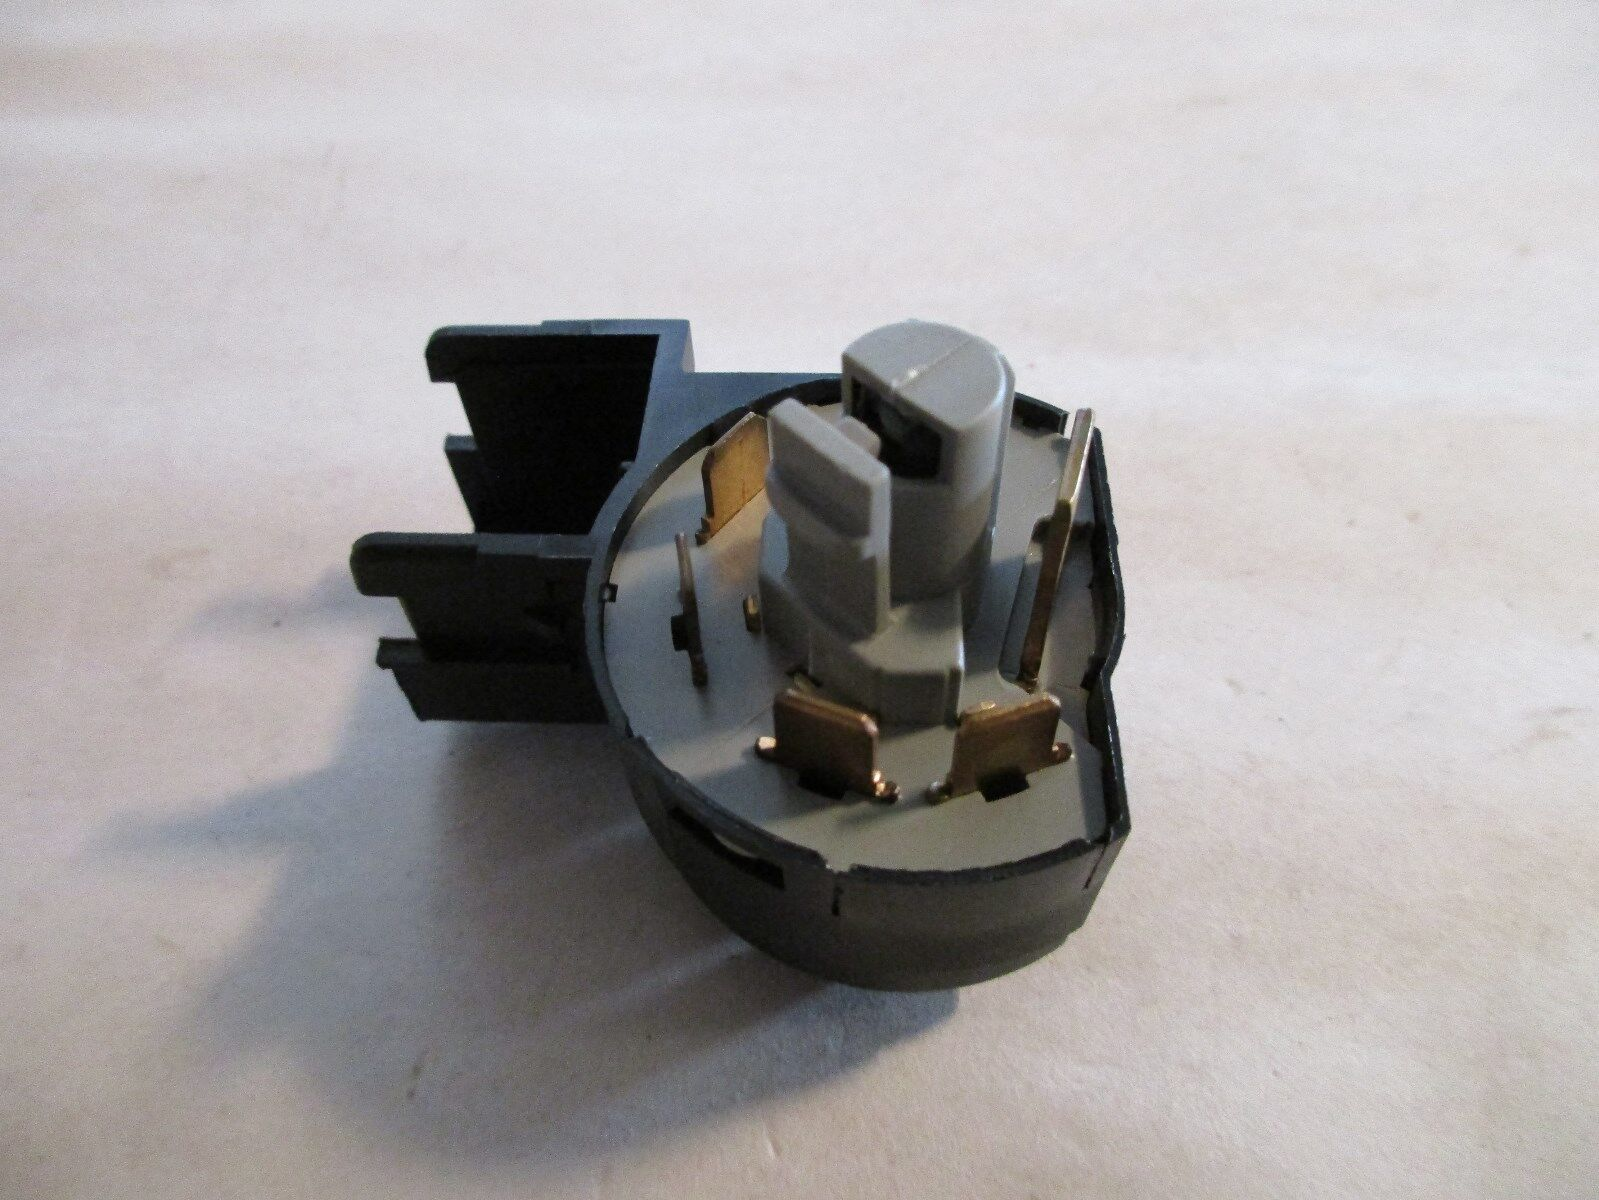 Formula Auto Parts ISS157 Ignition Switch Fits Cadillac OE #90505912